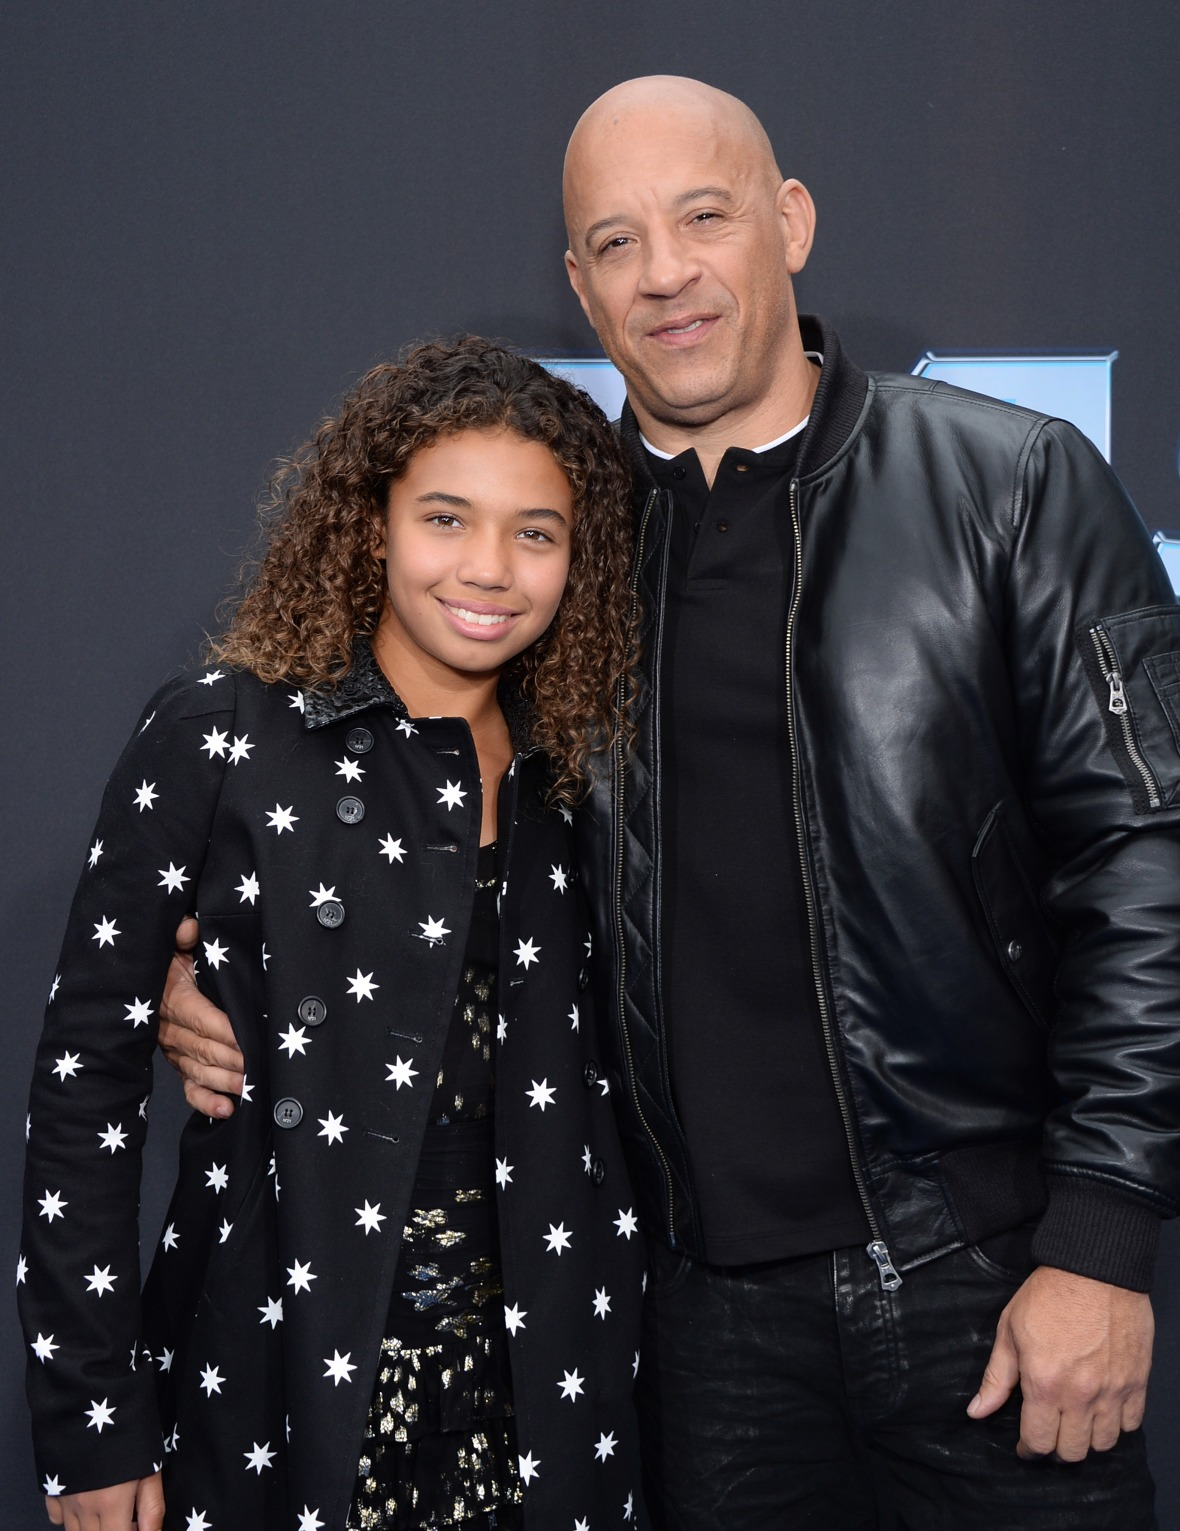 Vin Diesel and Daughter Similce at the 'Fast & Furious: Spy Racers' World Premiere